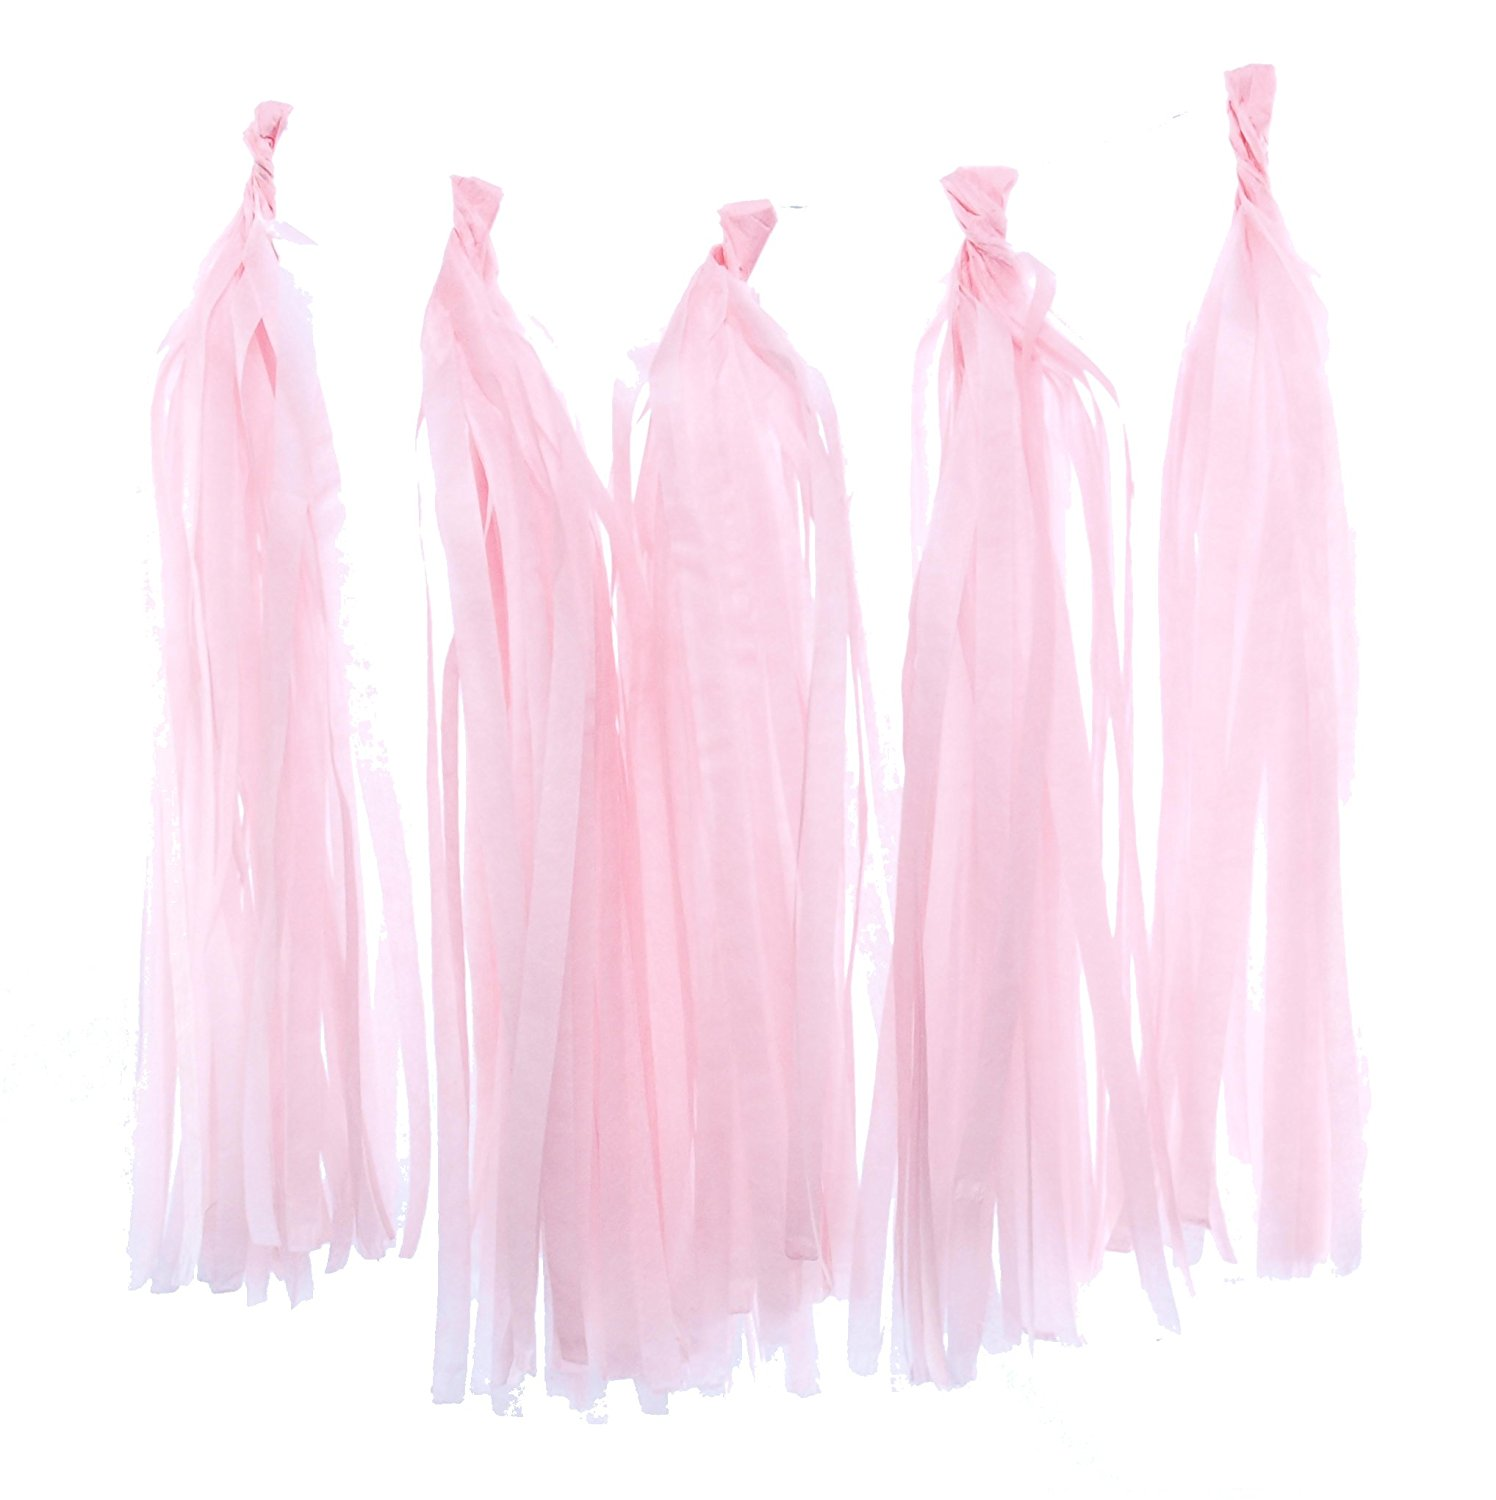 Tassel Garland, Light Pink Tissue Paper Tassels (Set of 5) - Pink Party Streamers, Wedding Decorations, Tassel Party Banners